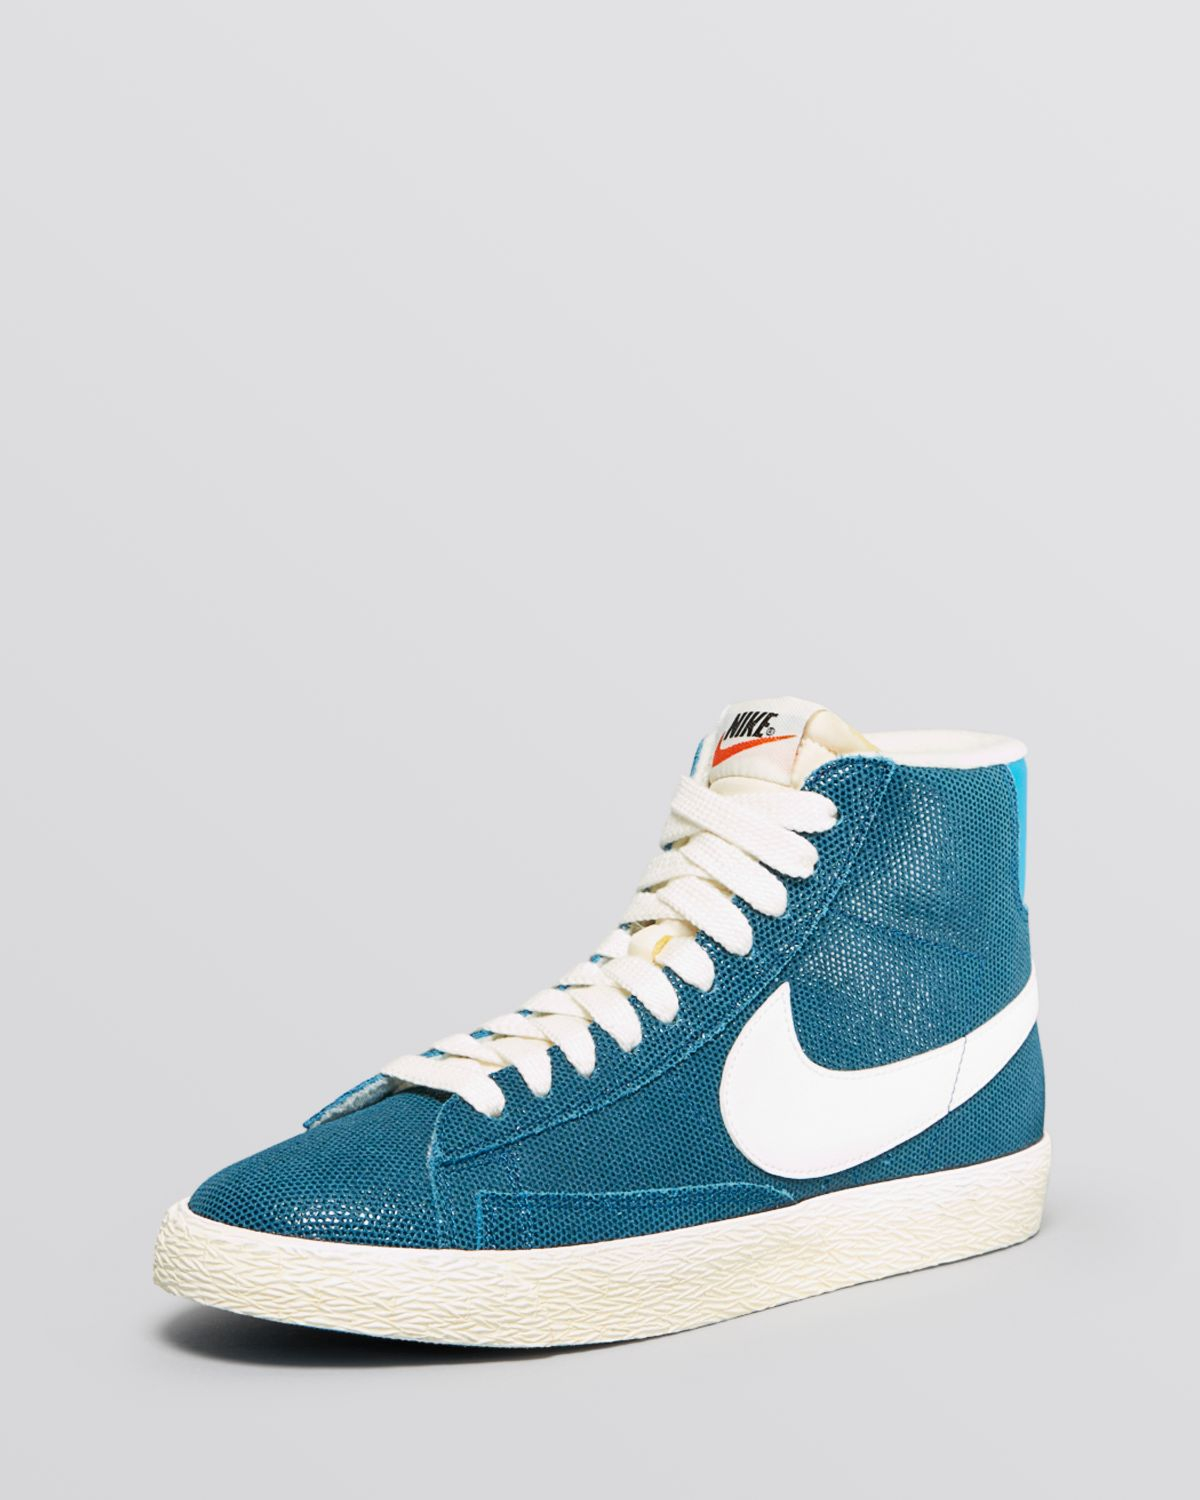 Lyst - Nike Lace Up High Top Sneakers - Women S Blazer Mid in Blue 4edc9078a